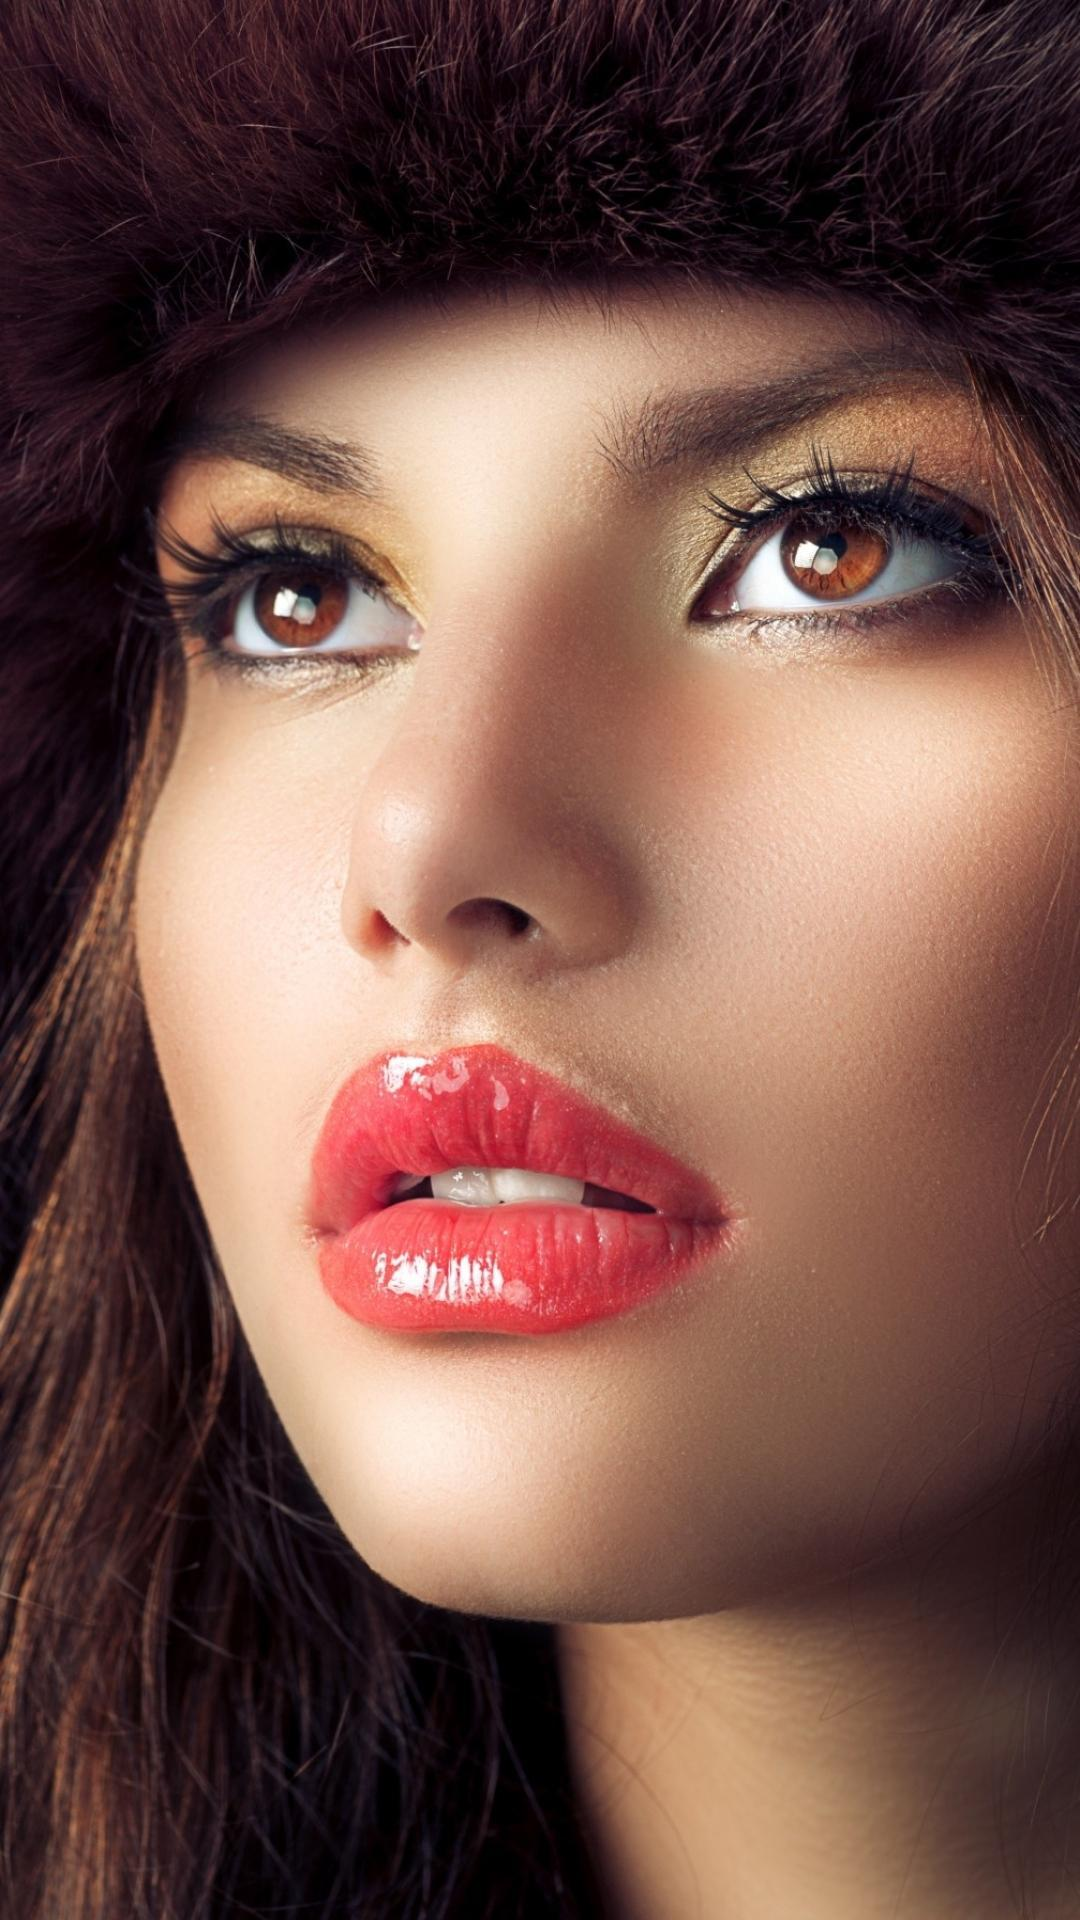 Hot Beauty Girl Wallpaper Hd For Android Apk Download